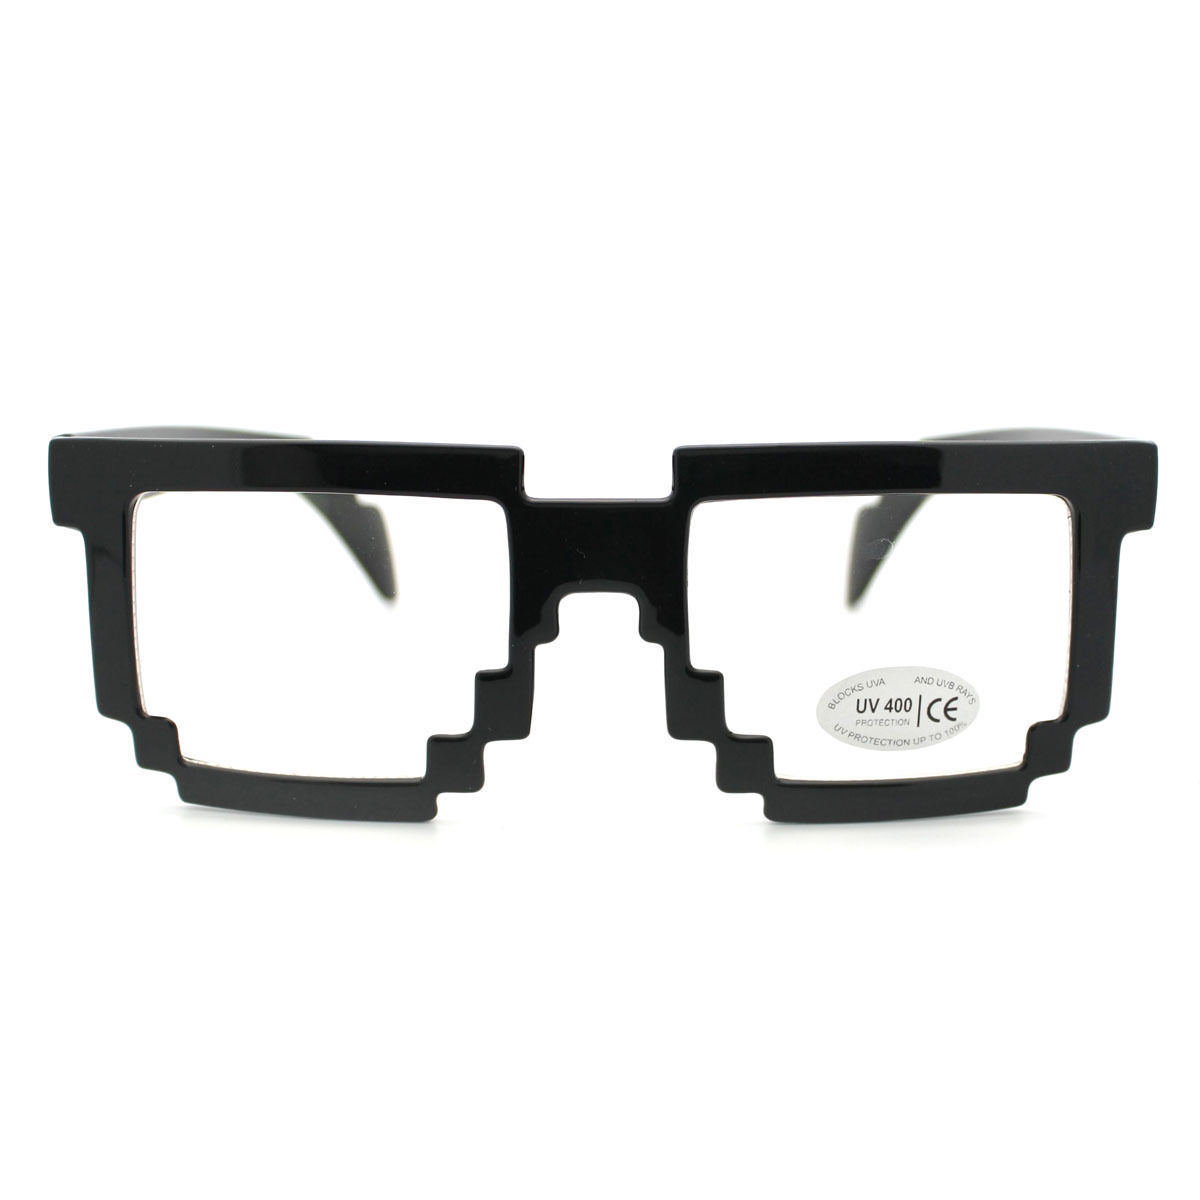 PIXEL PARTY Sunglasses CLEAR Lens Eyeglasses FUN GAME Novelty Fashion Wear BLACK